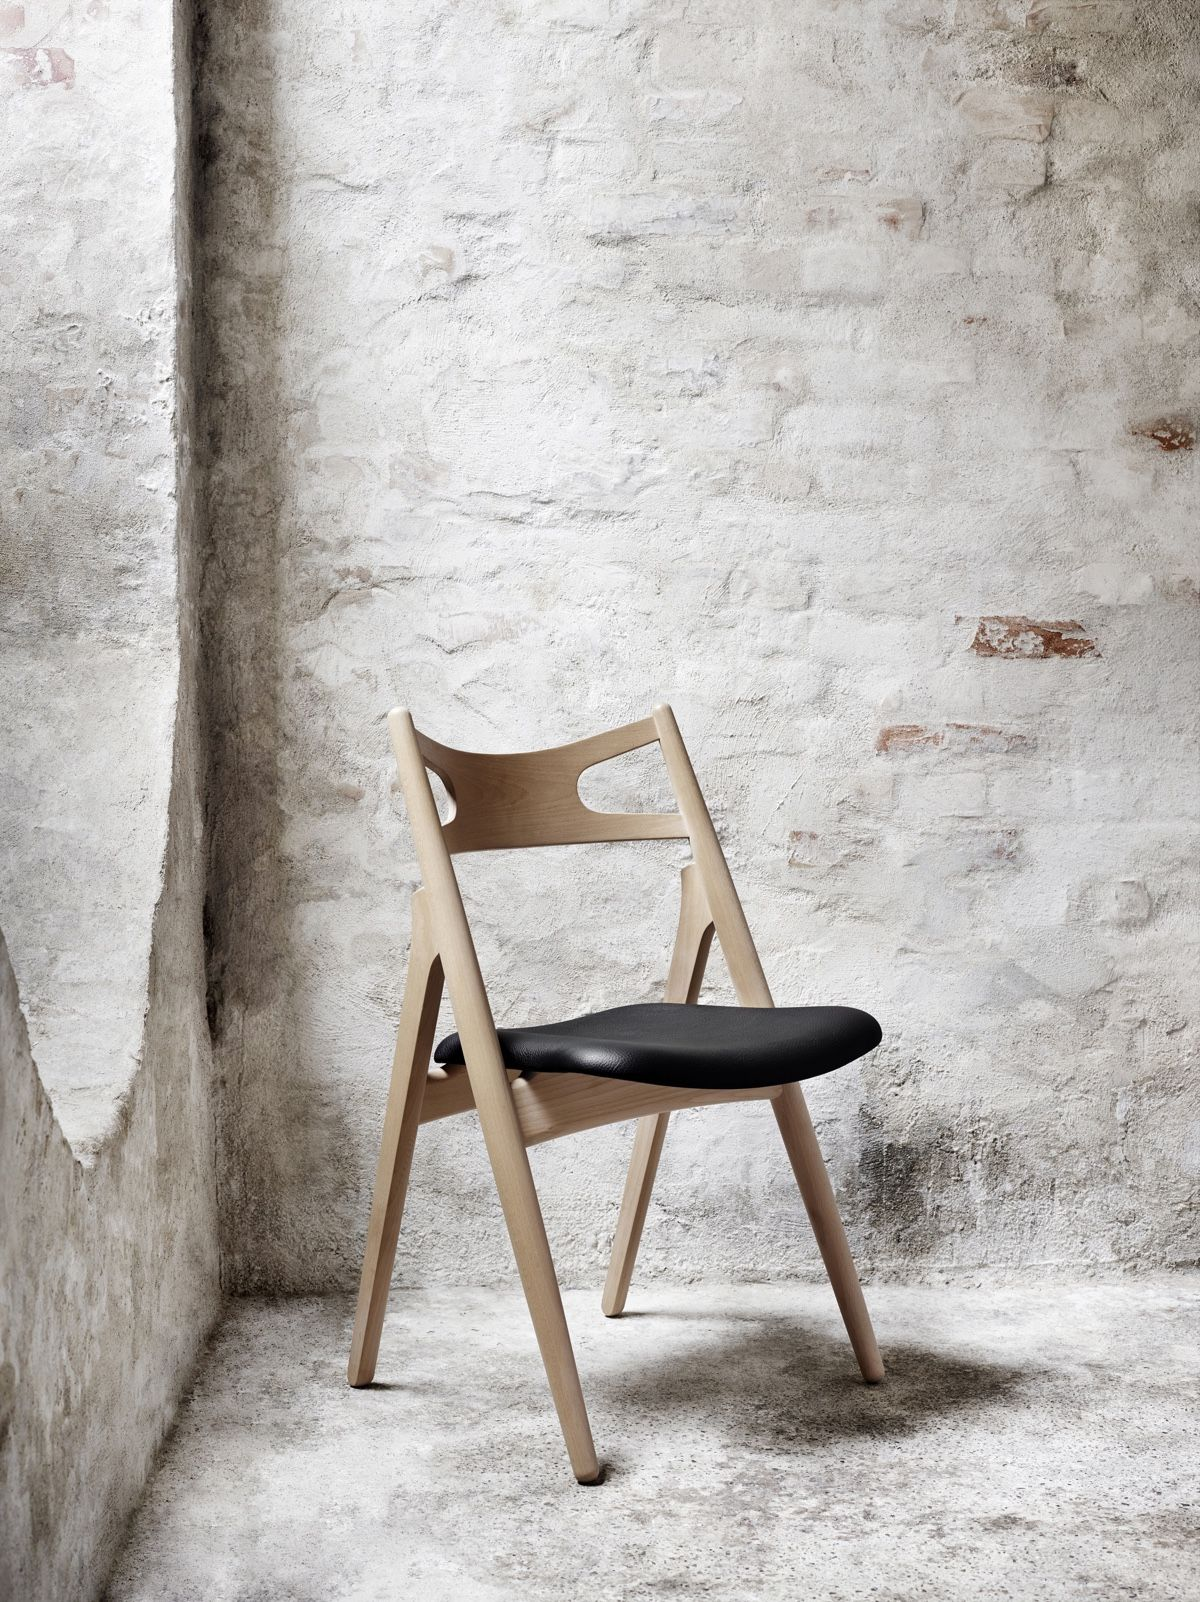 12 Iconic Chair Designs from the 1950s   Chair design